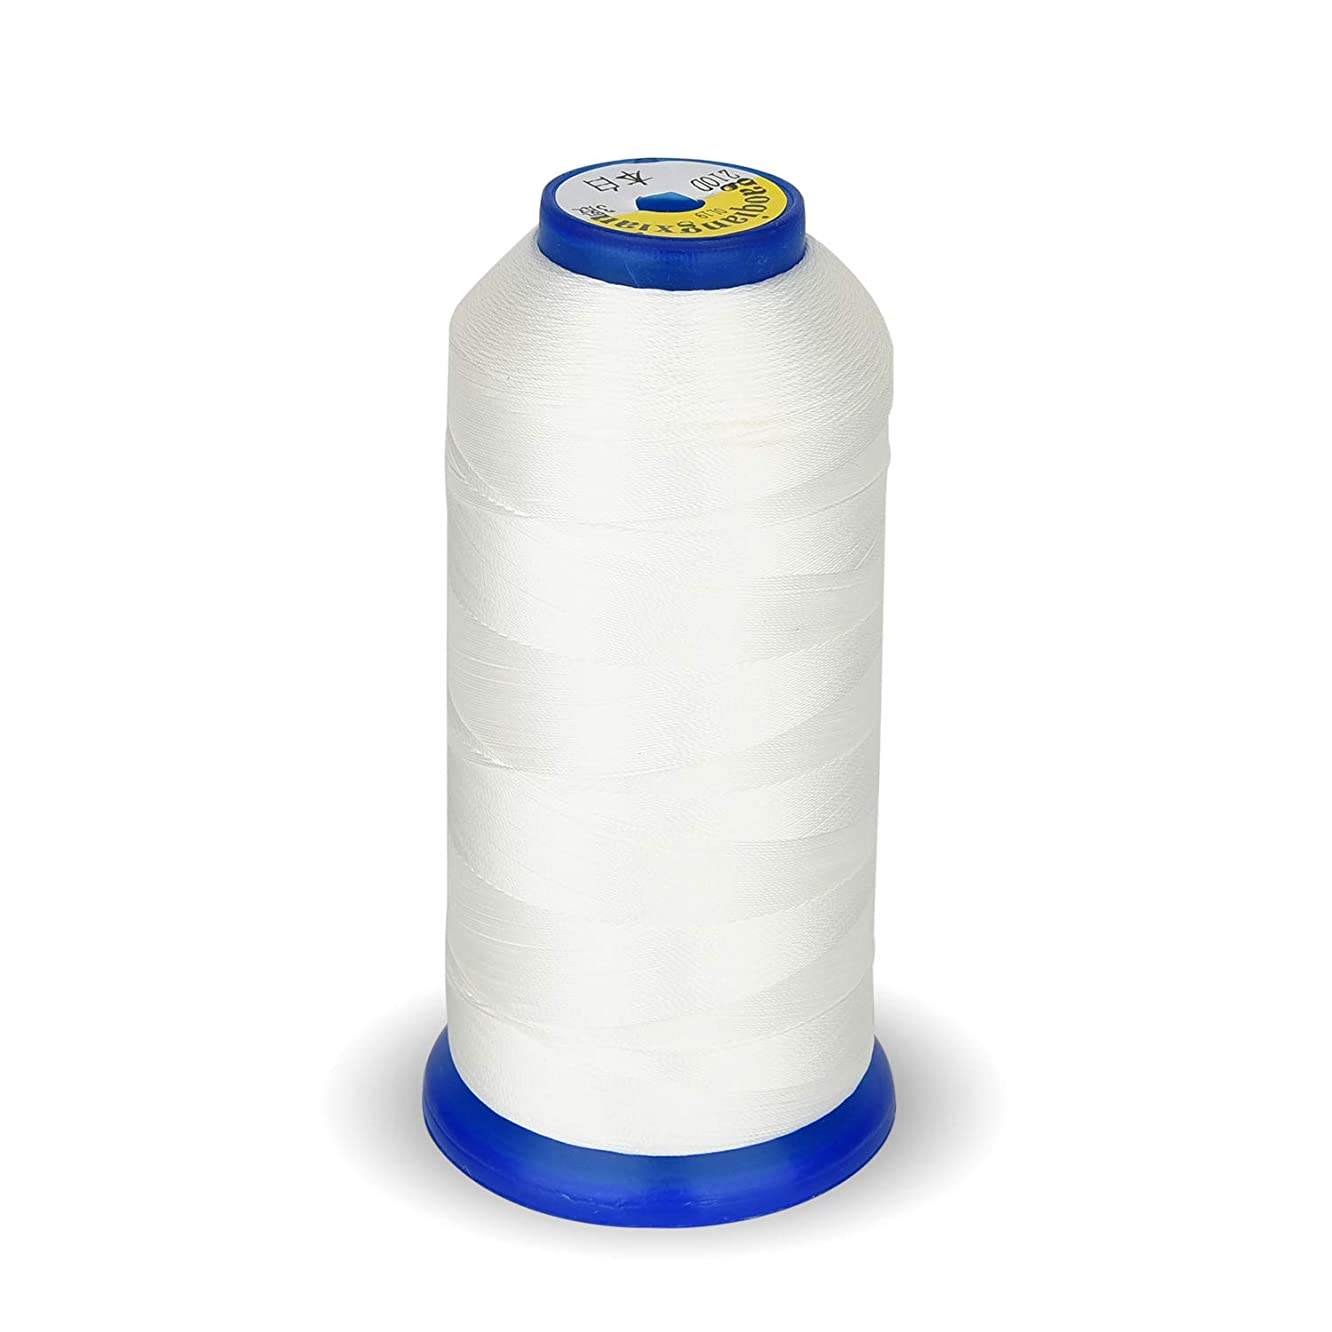 Bonded Nylon Sewing Thread 1800 Yard Size T70#69 210D/3 for Weaves, Upholstery, Jeans and Weaving Hair, Drapery, Beading, Purses, Leather (White)